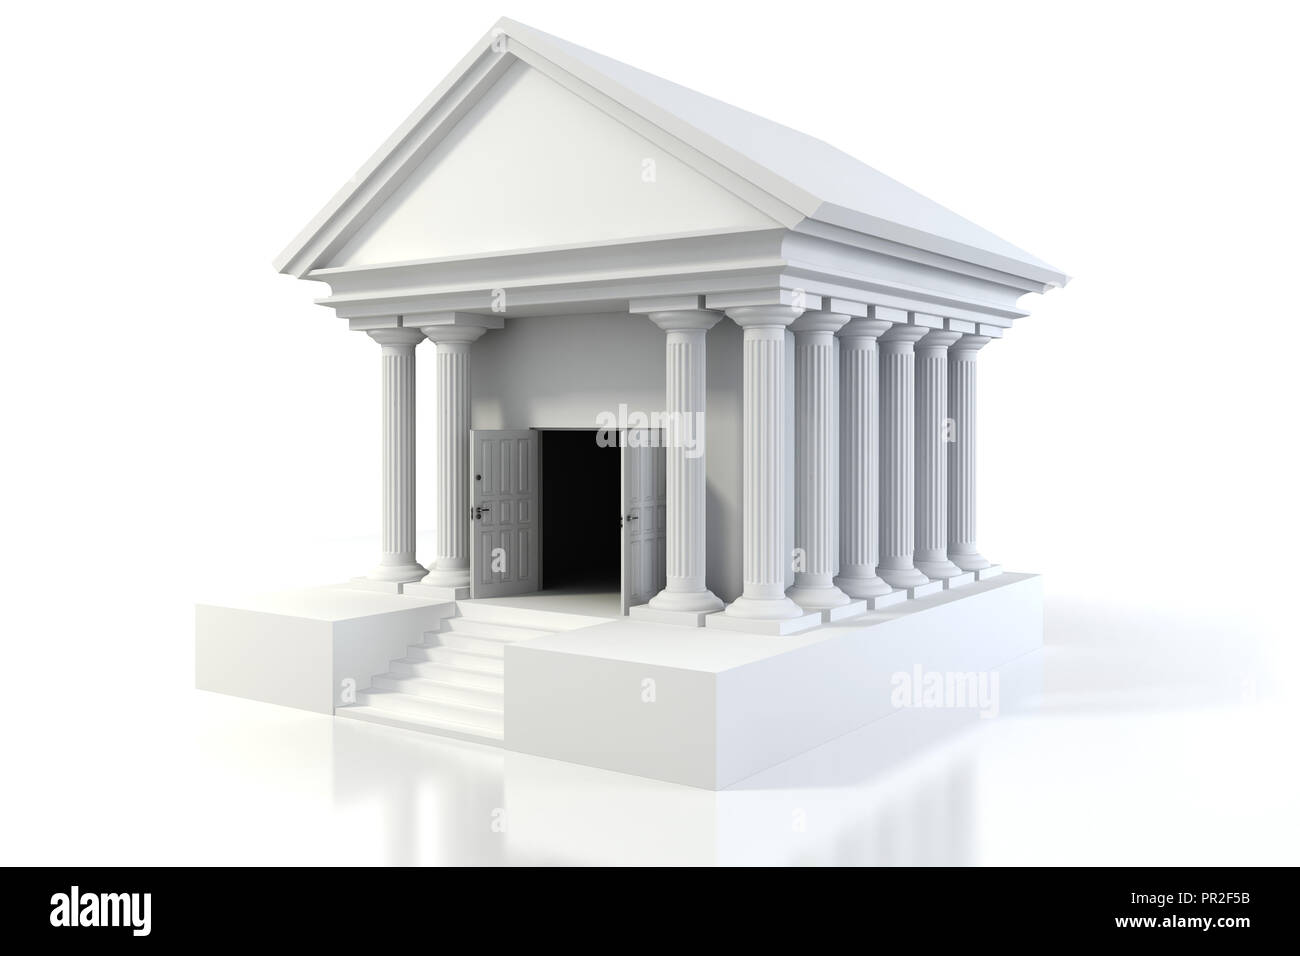 Design Vintage Bank.3d Icon Of Vintage Bank Building On White Background Stock Photo